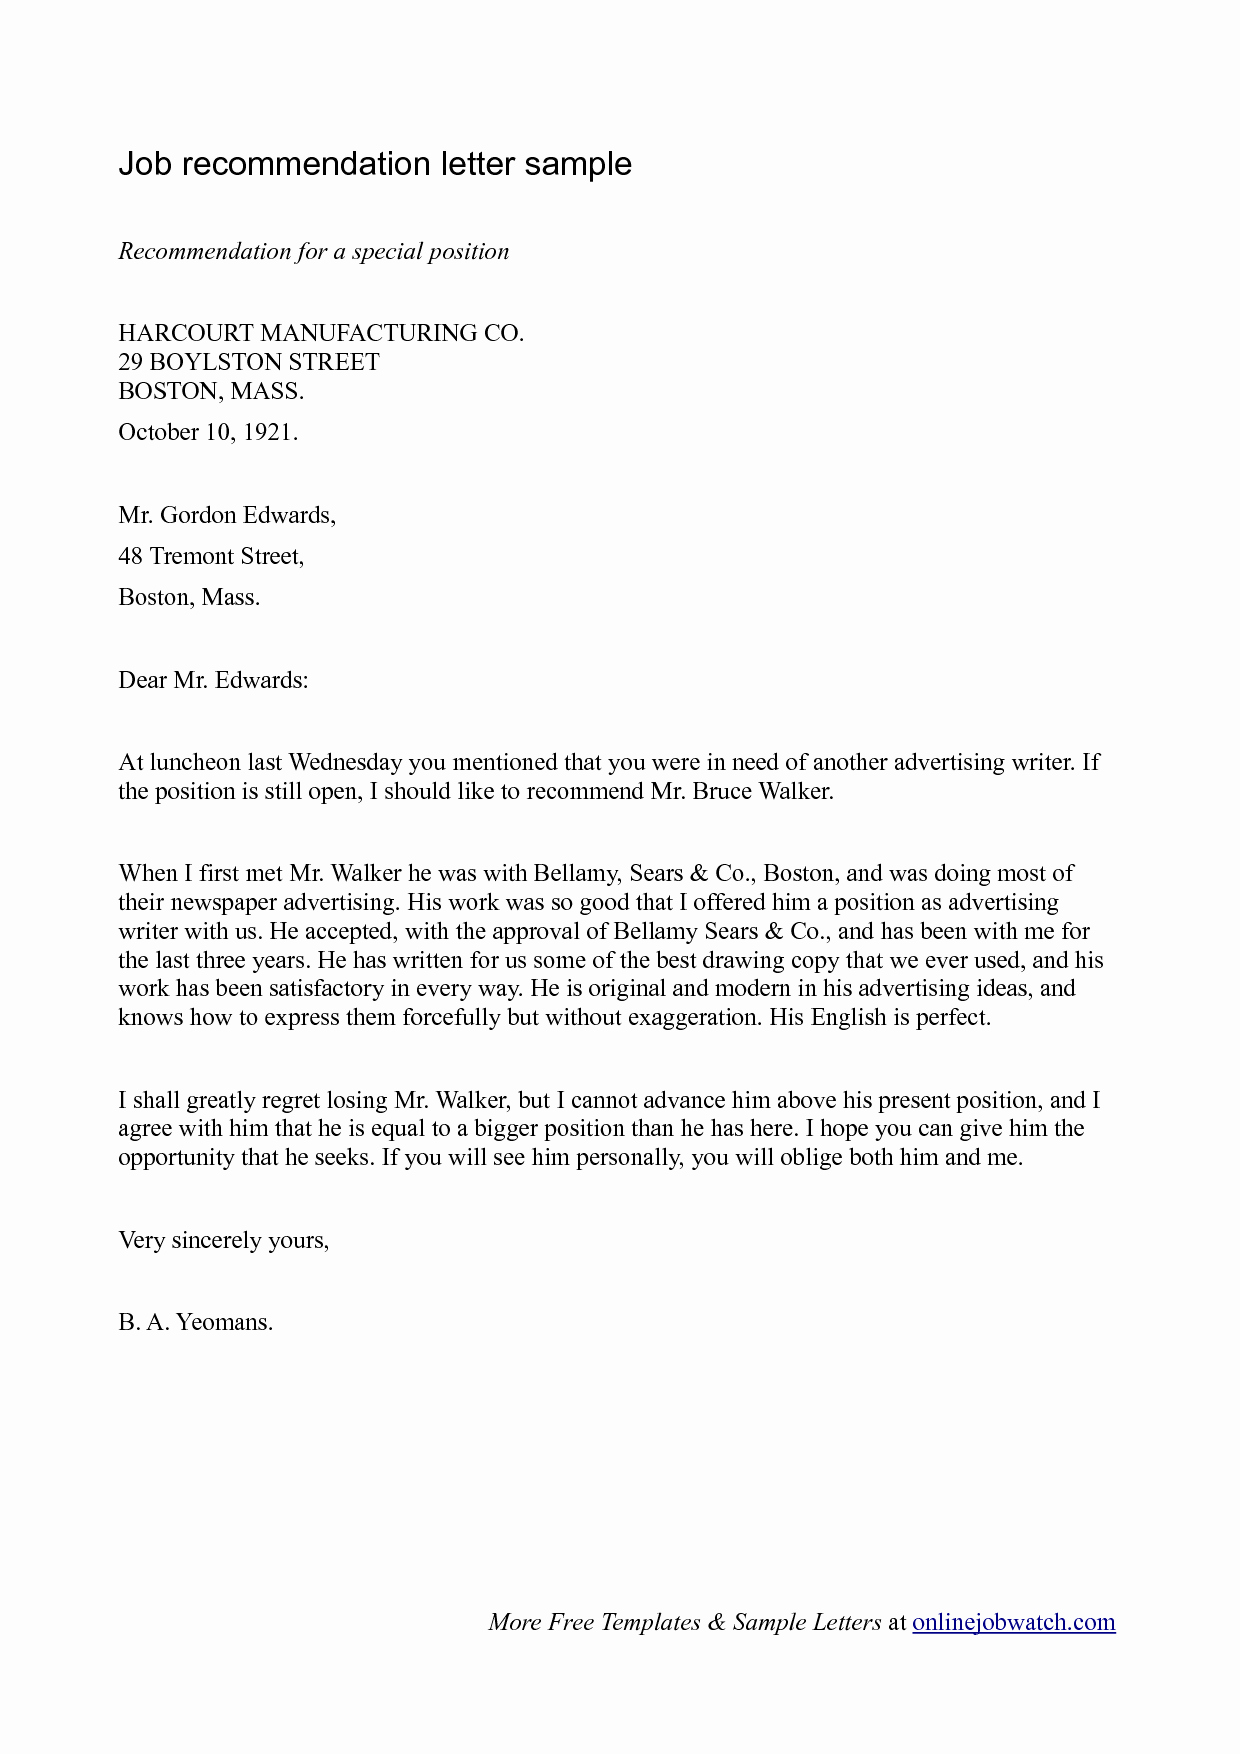 Recommendation Letter Examples for Jobs Inspirational Simple Guide Professional Reference Letter with Samples